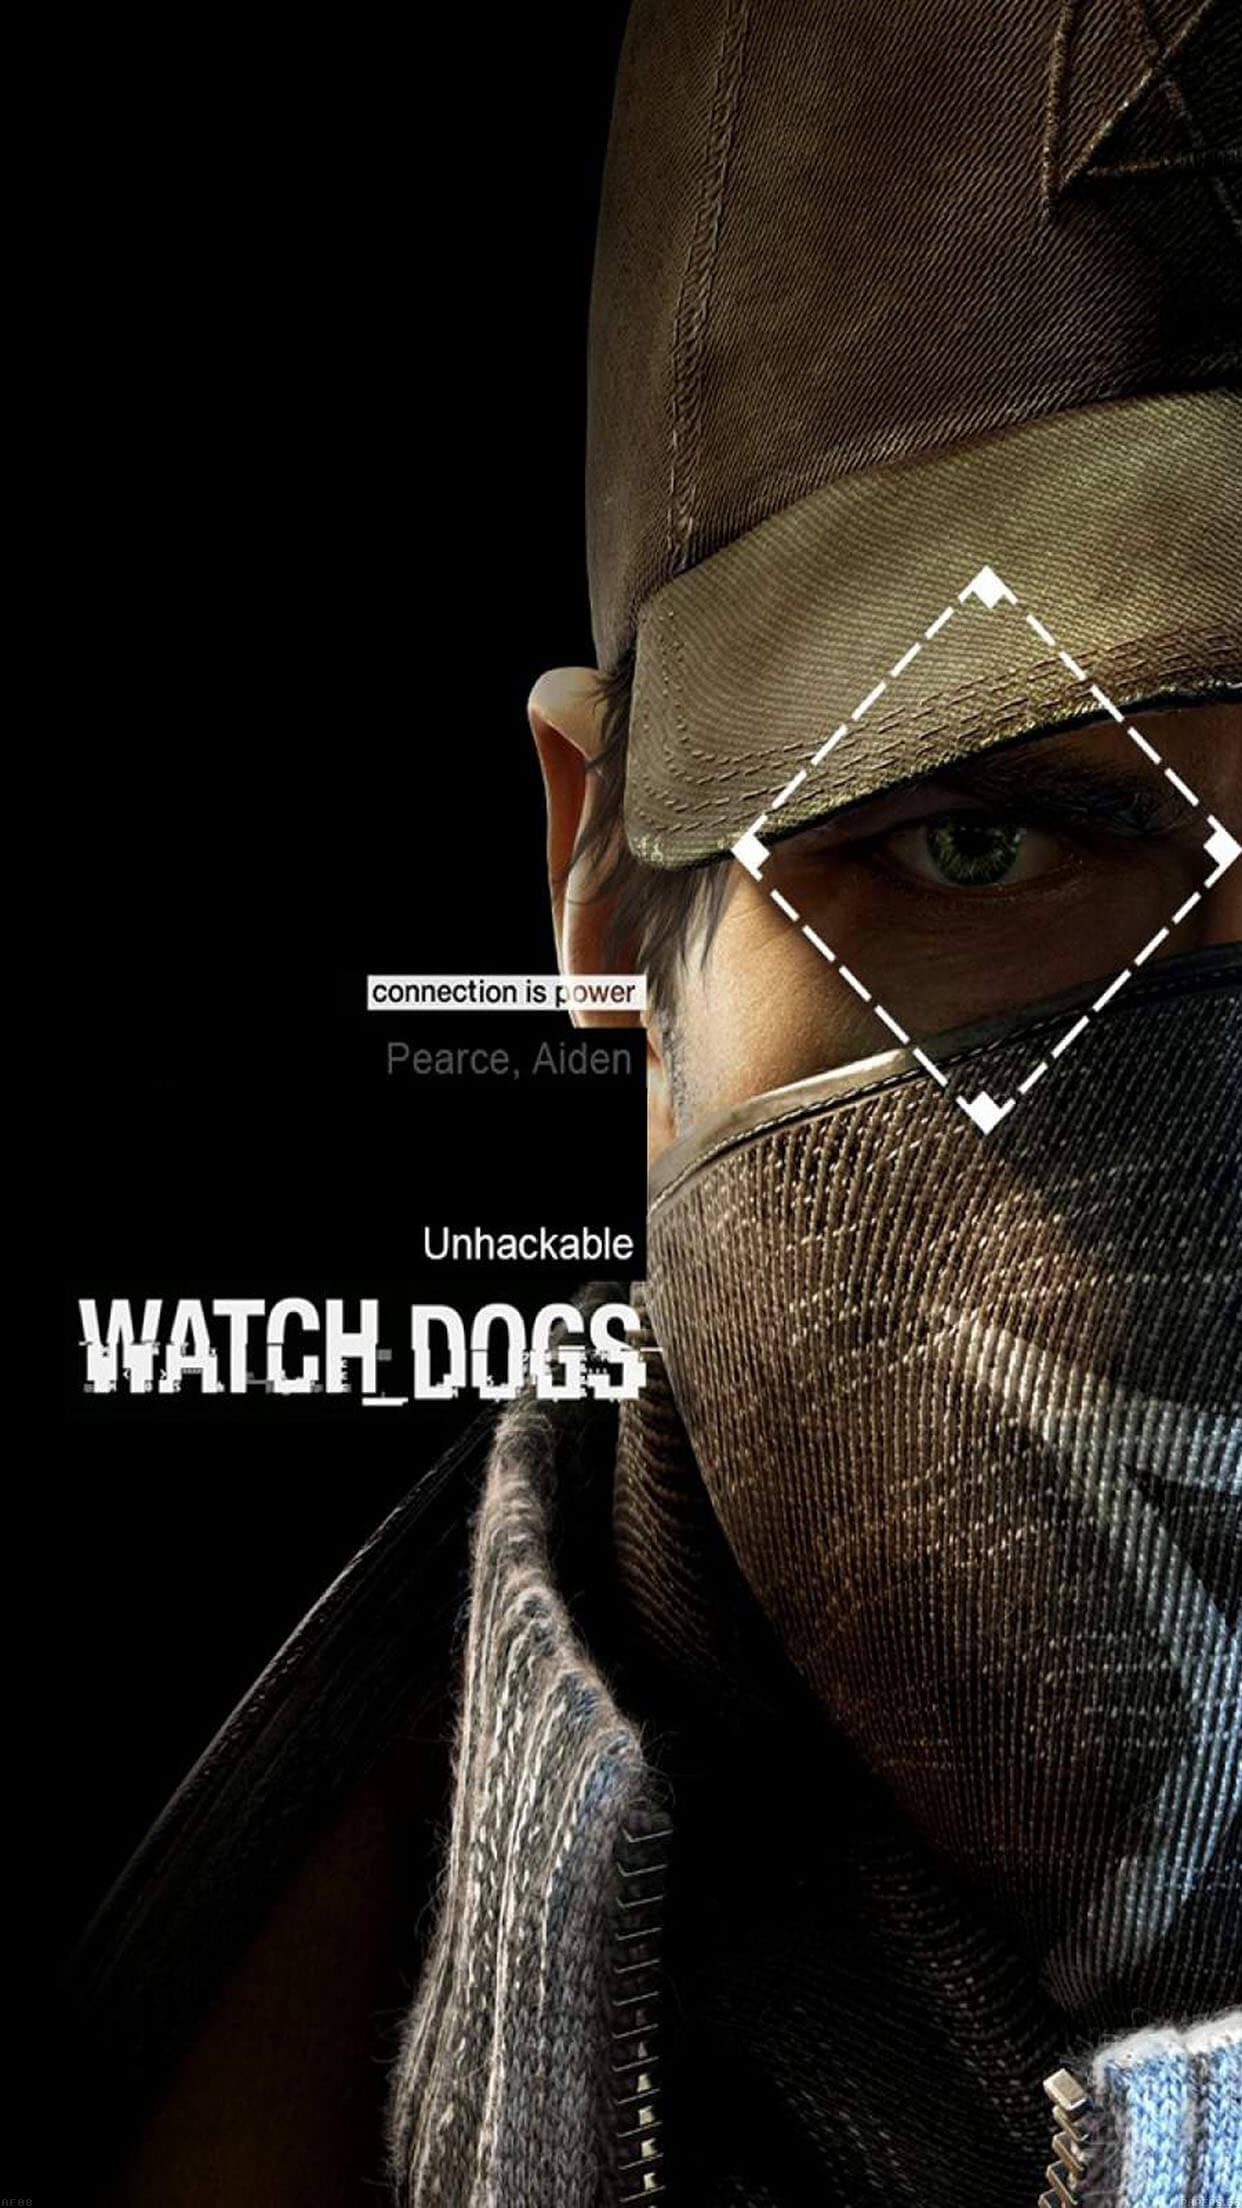 watchdogs pearce aiden iphone 7 plus wallpaper